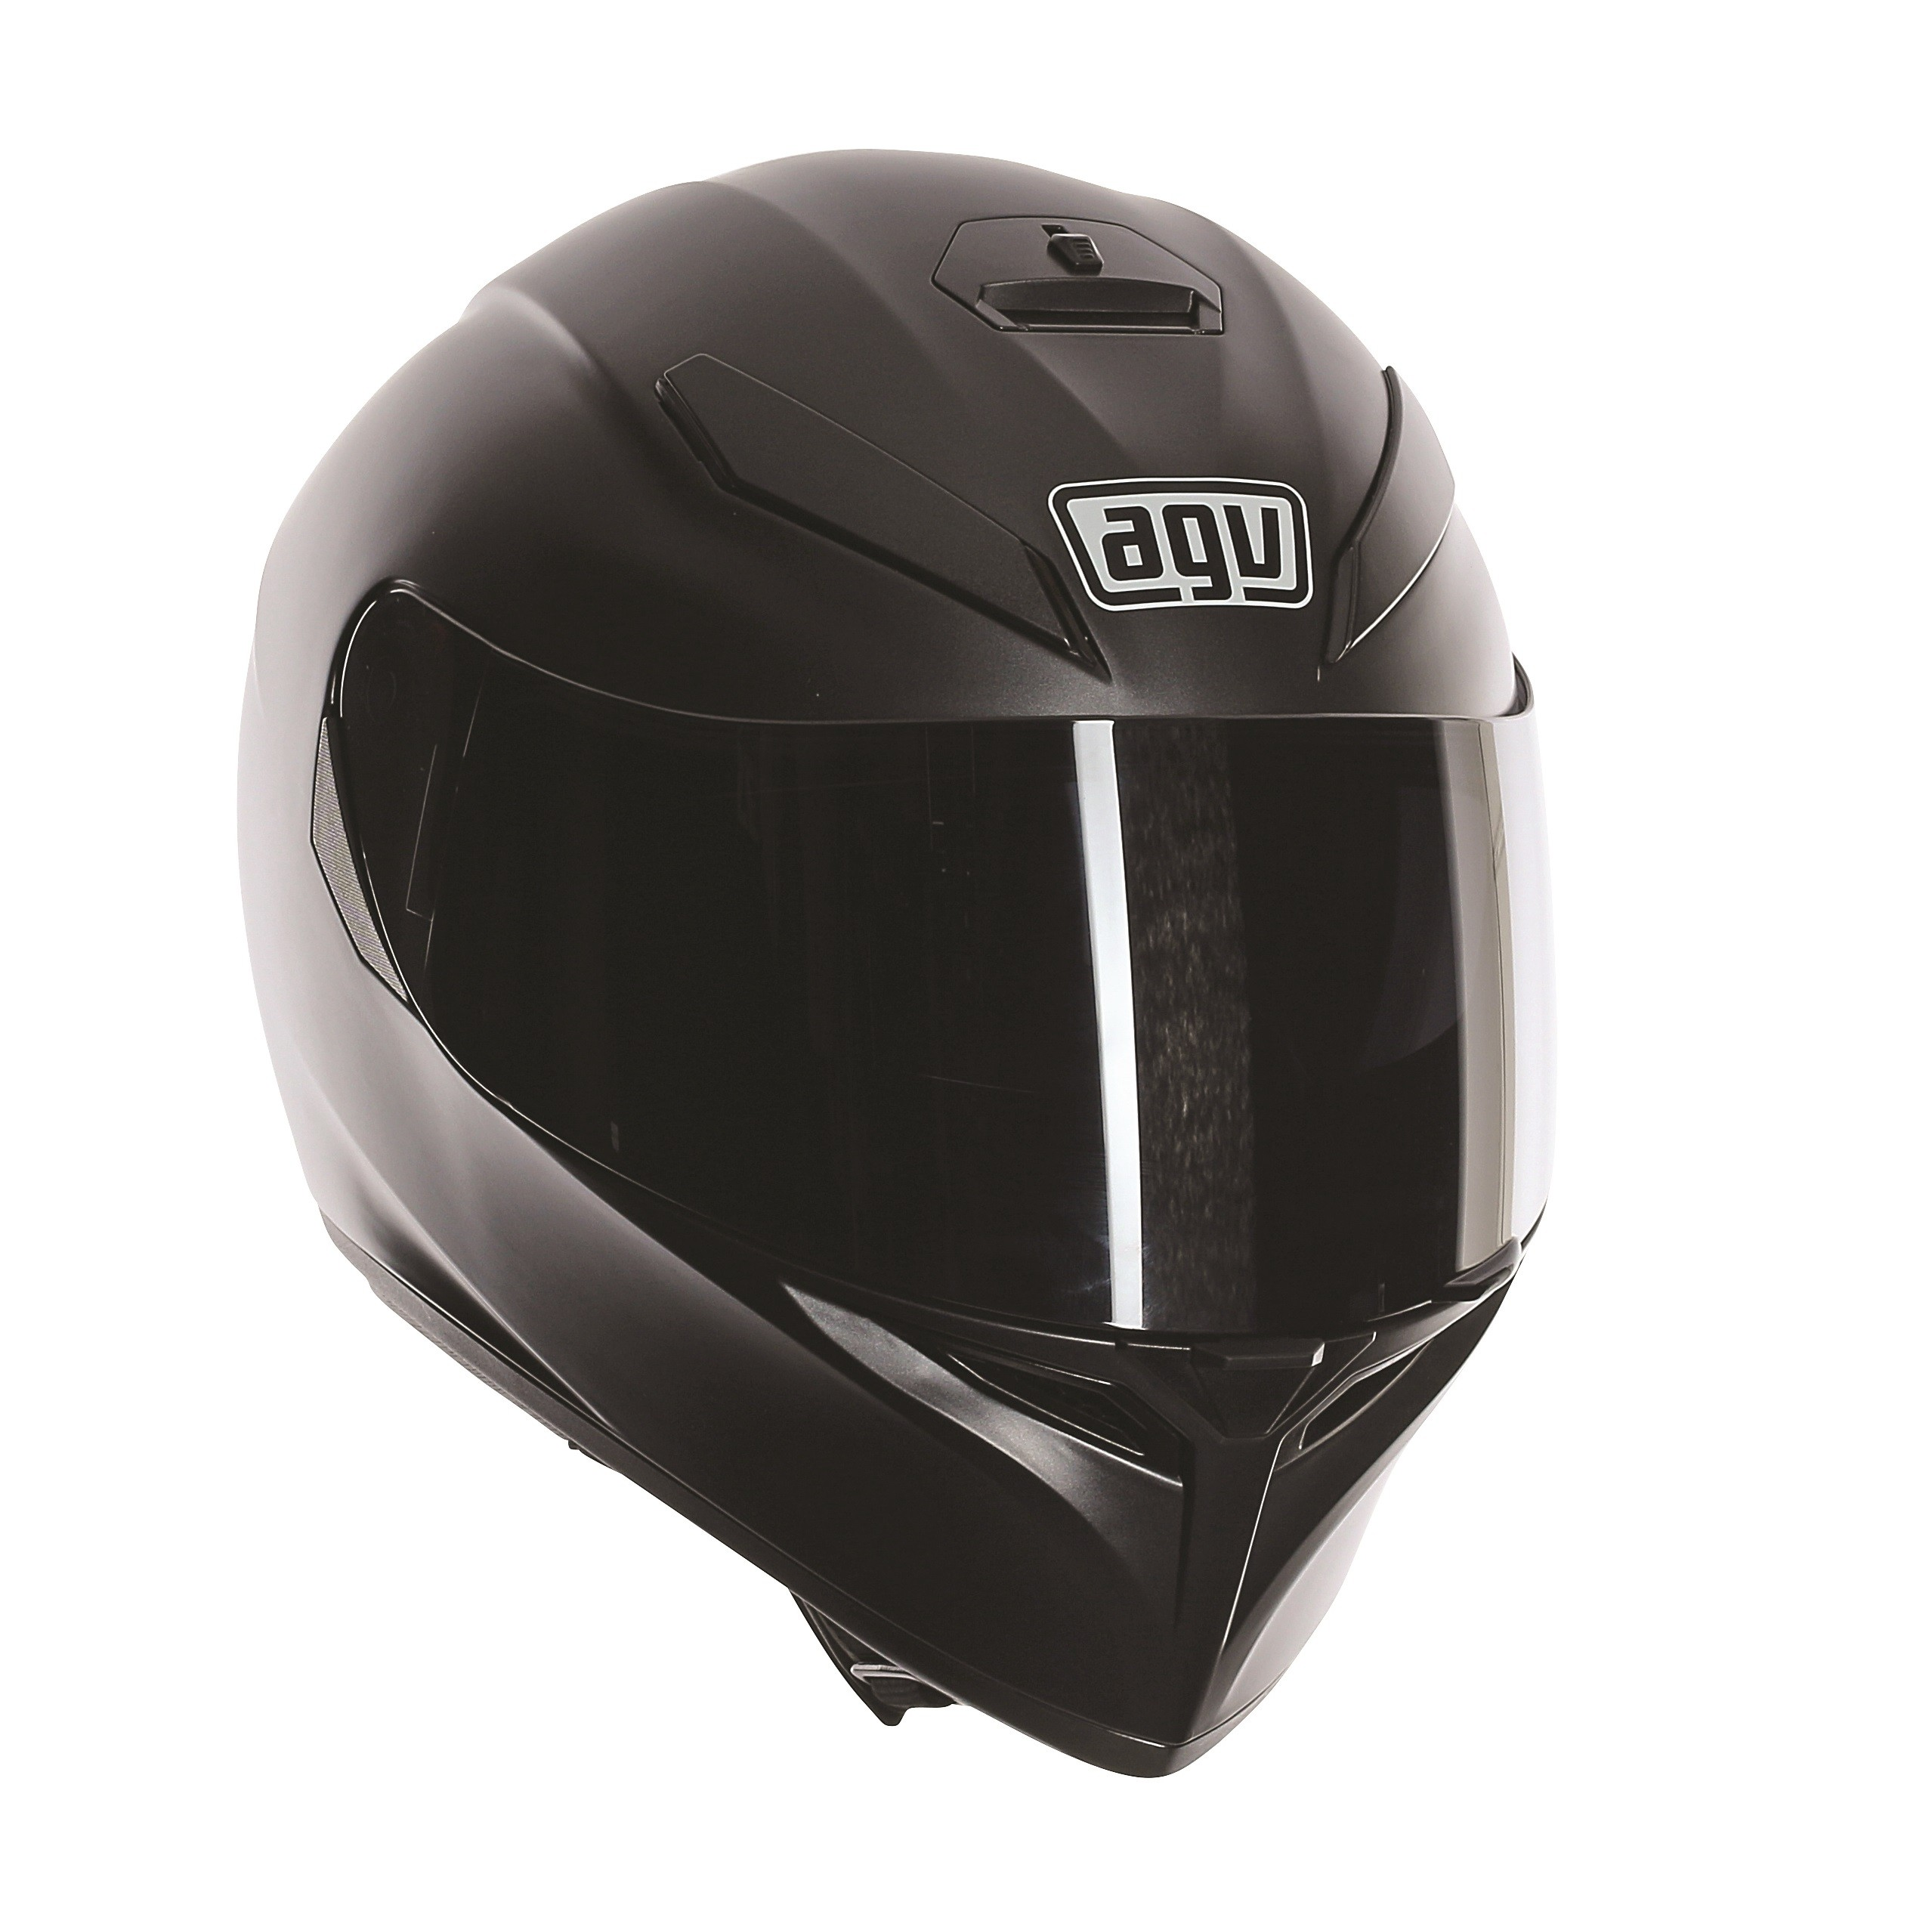 agv k3 sv helmet. Black Bedroom Furniture Sets. Home Design Ideas